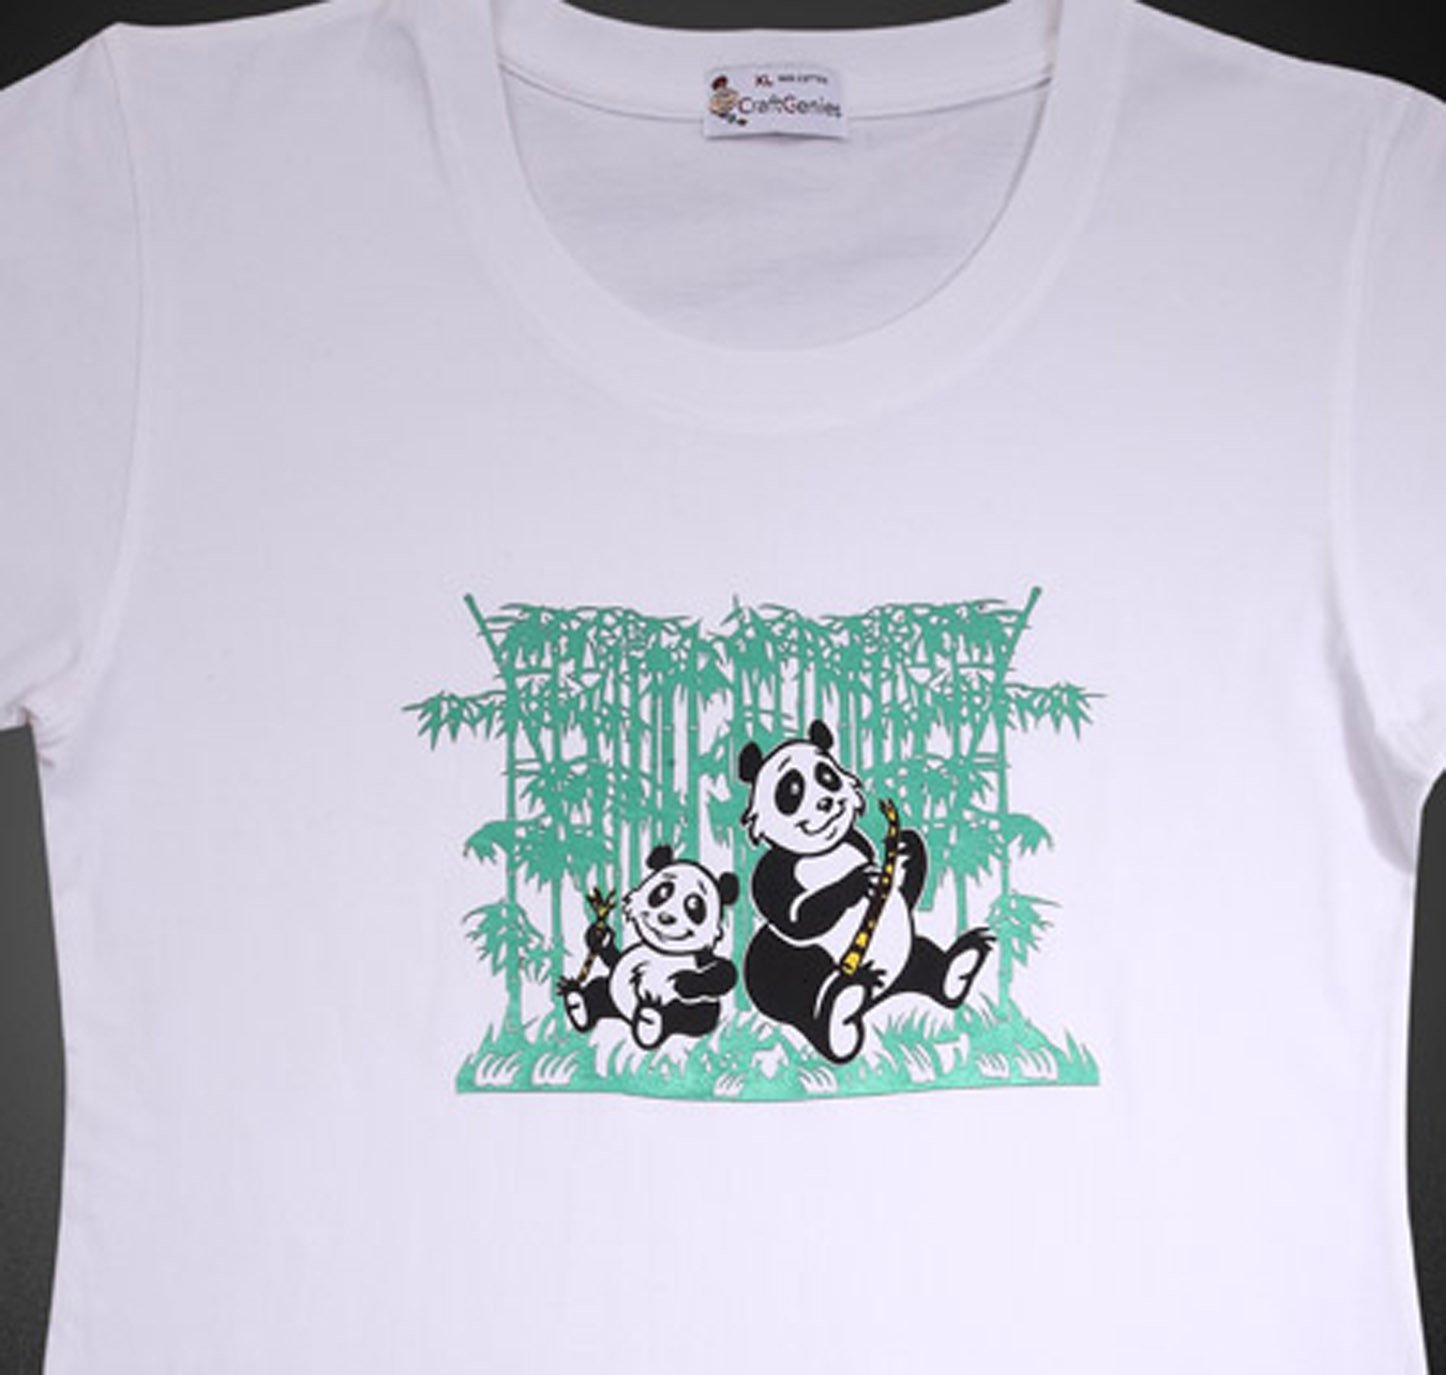 Panda T Shirt Design for Women - Original in Package  (Women's XL)